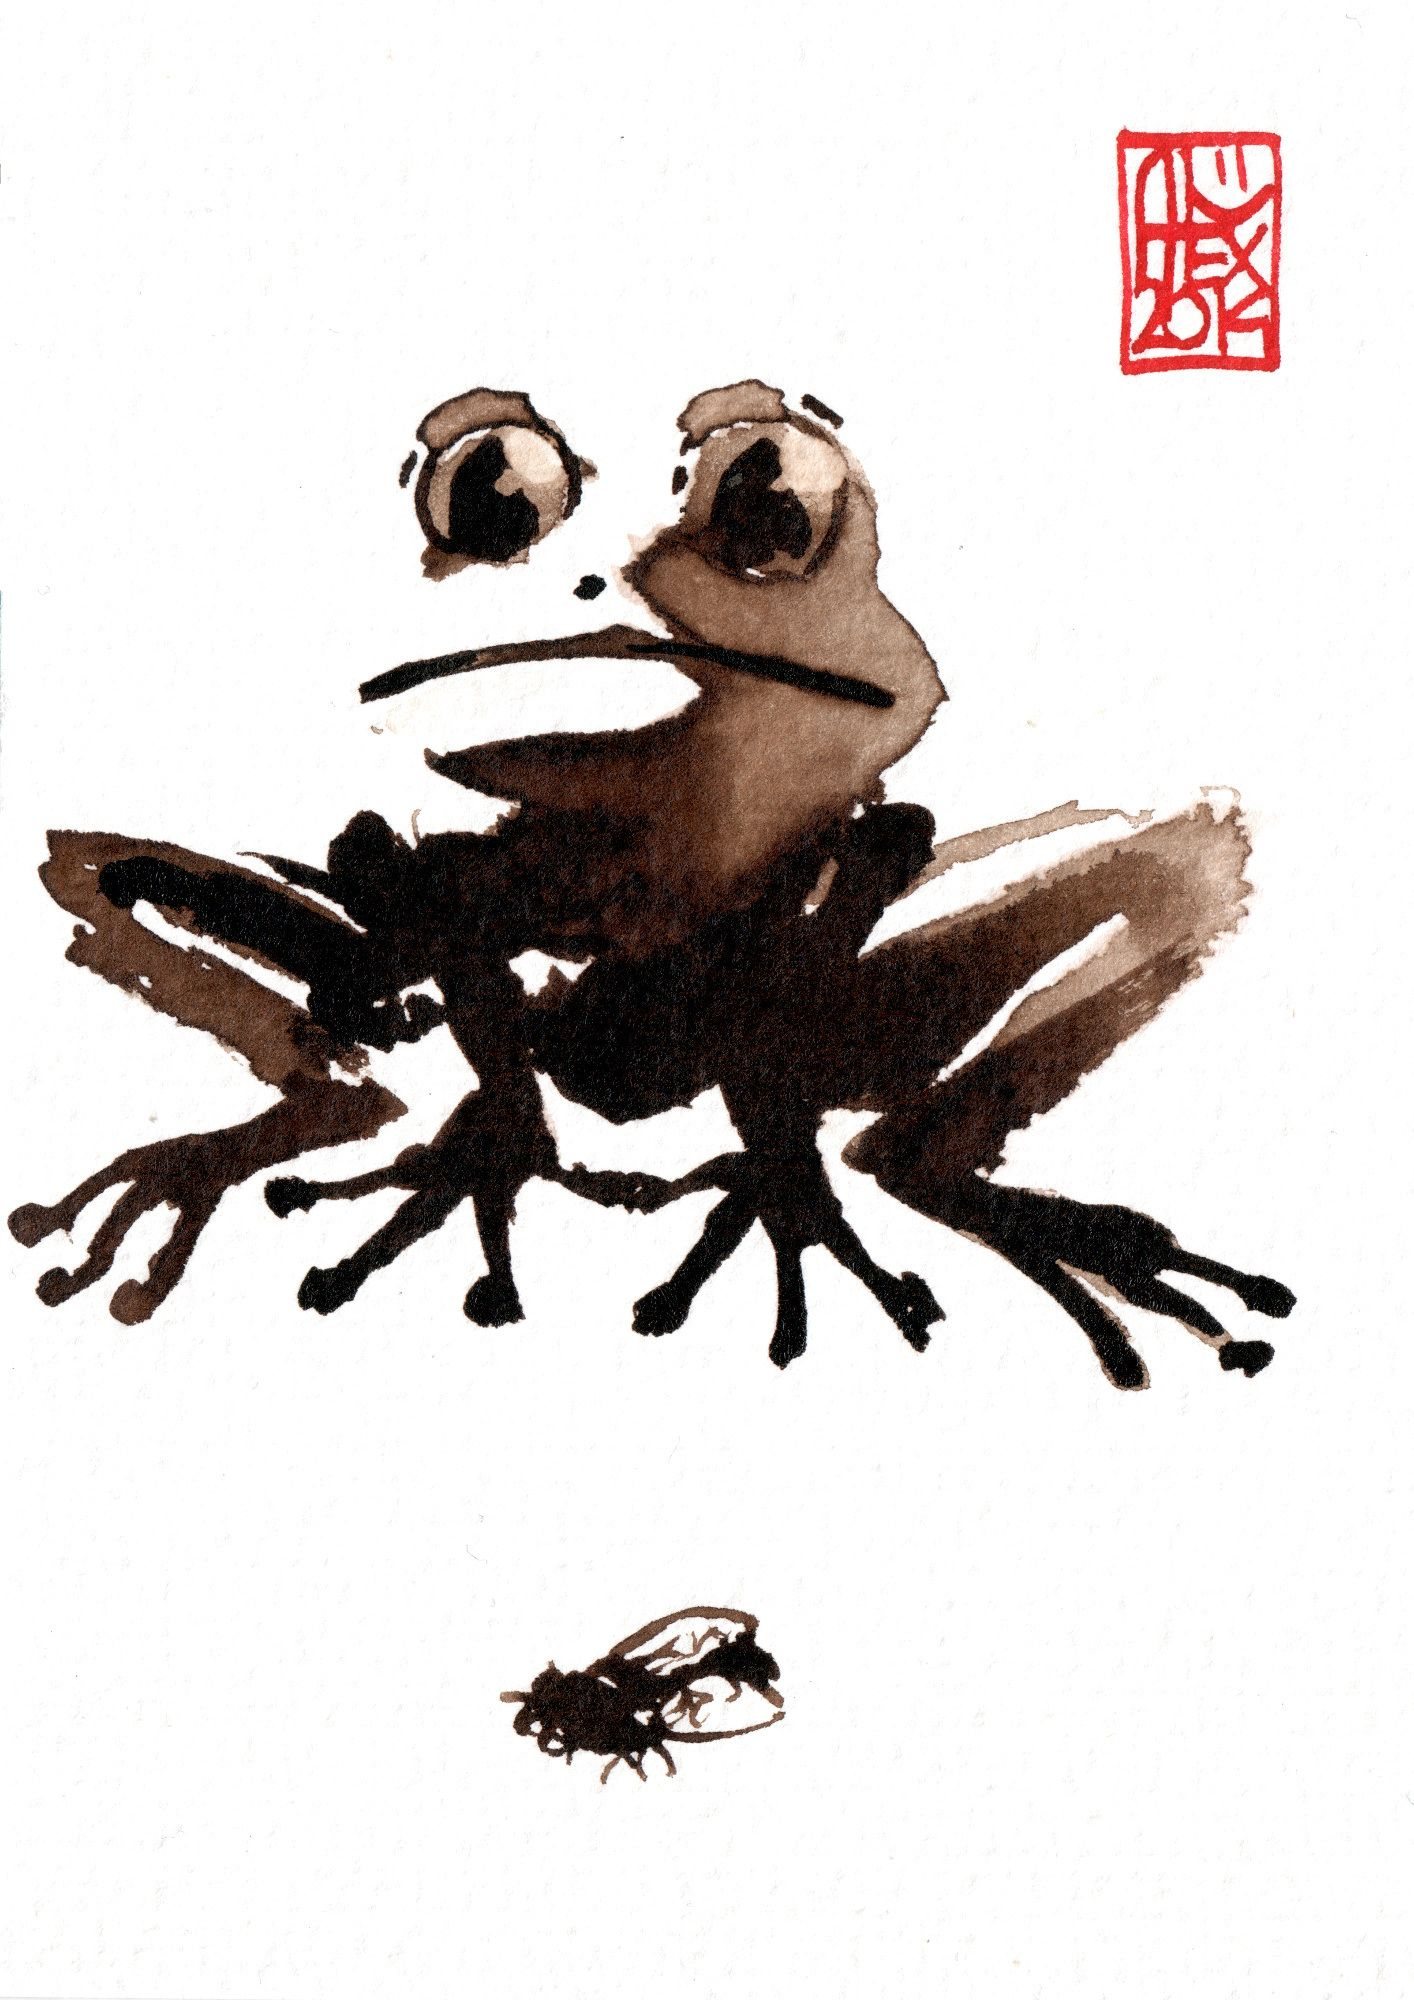 aquarelle watercolor grenouille frog frogs. Black Bedroom Furniture Sets. Home Design Ideas